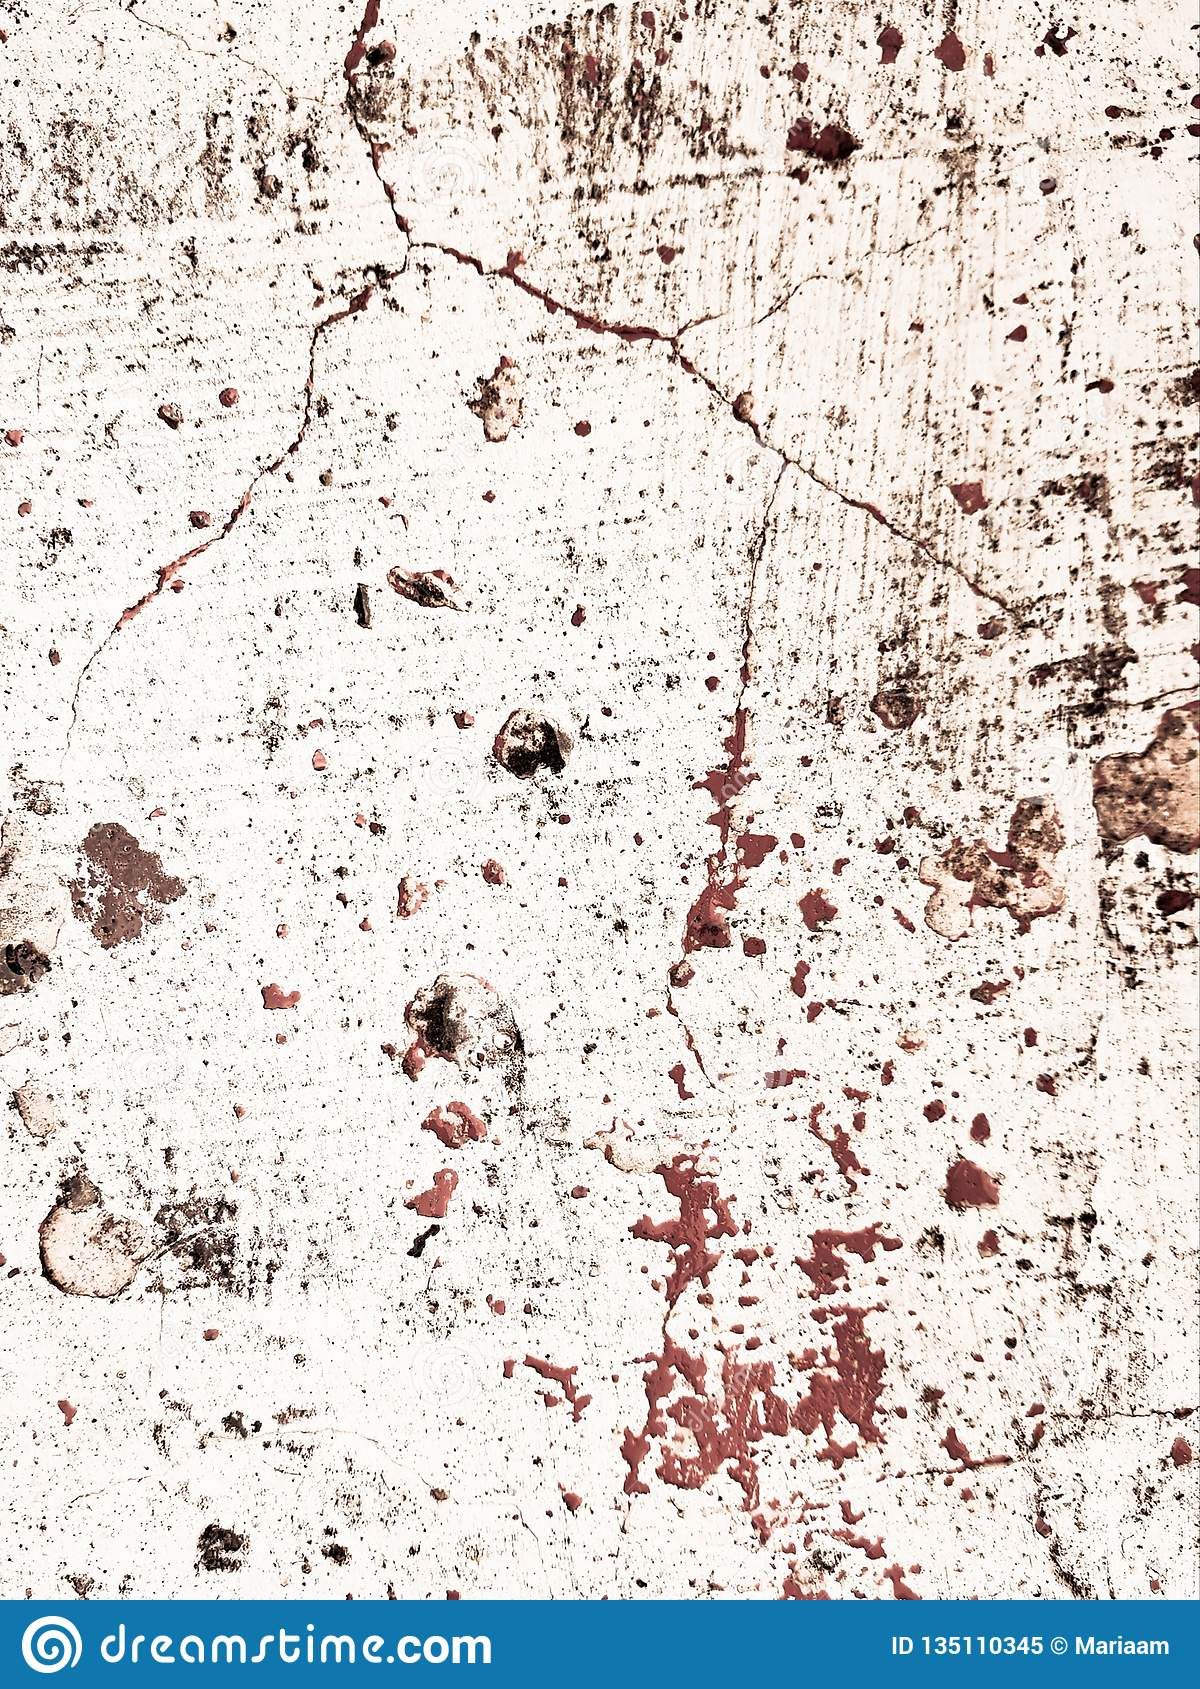 Grunge Background With Red Paint Splash Great Grunge Texture Looks Like Blood Stock Image Image Of Grunge Wall 135110345 Captcha will load here (please disable ad blocker). https www dreamstime com grunge background red paint splash great texture looks like blood color wall useful as backdrop horror theme bloody image135110345